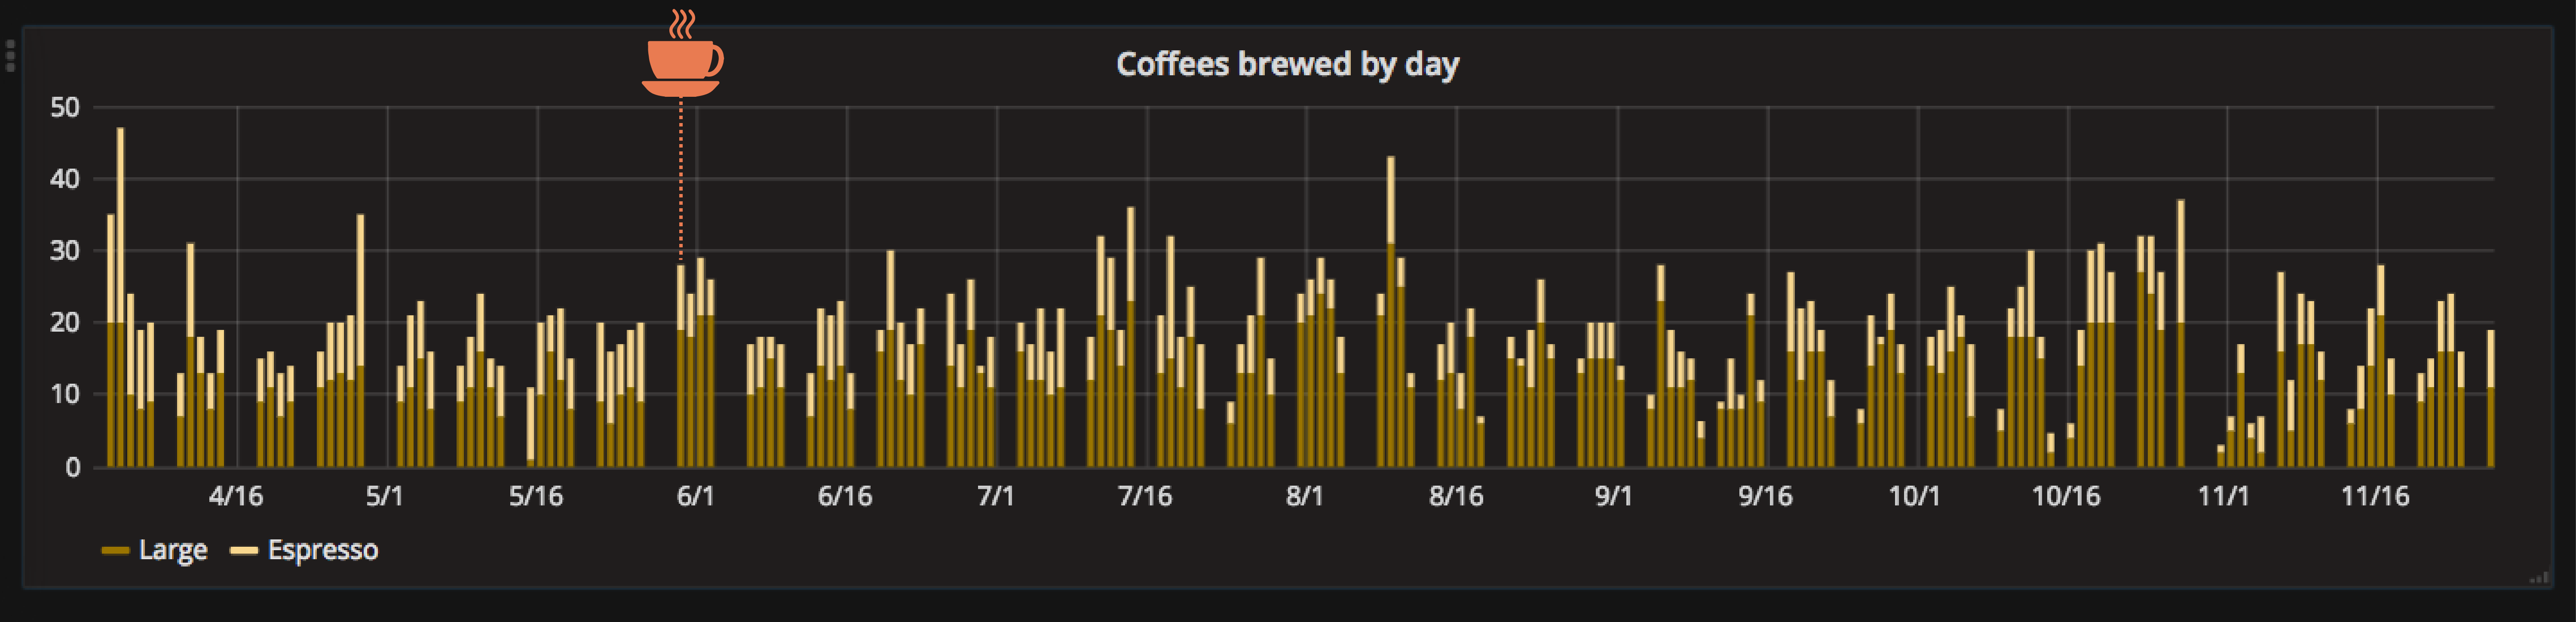 Coffees brewed by day graph